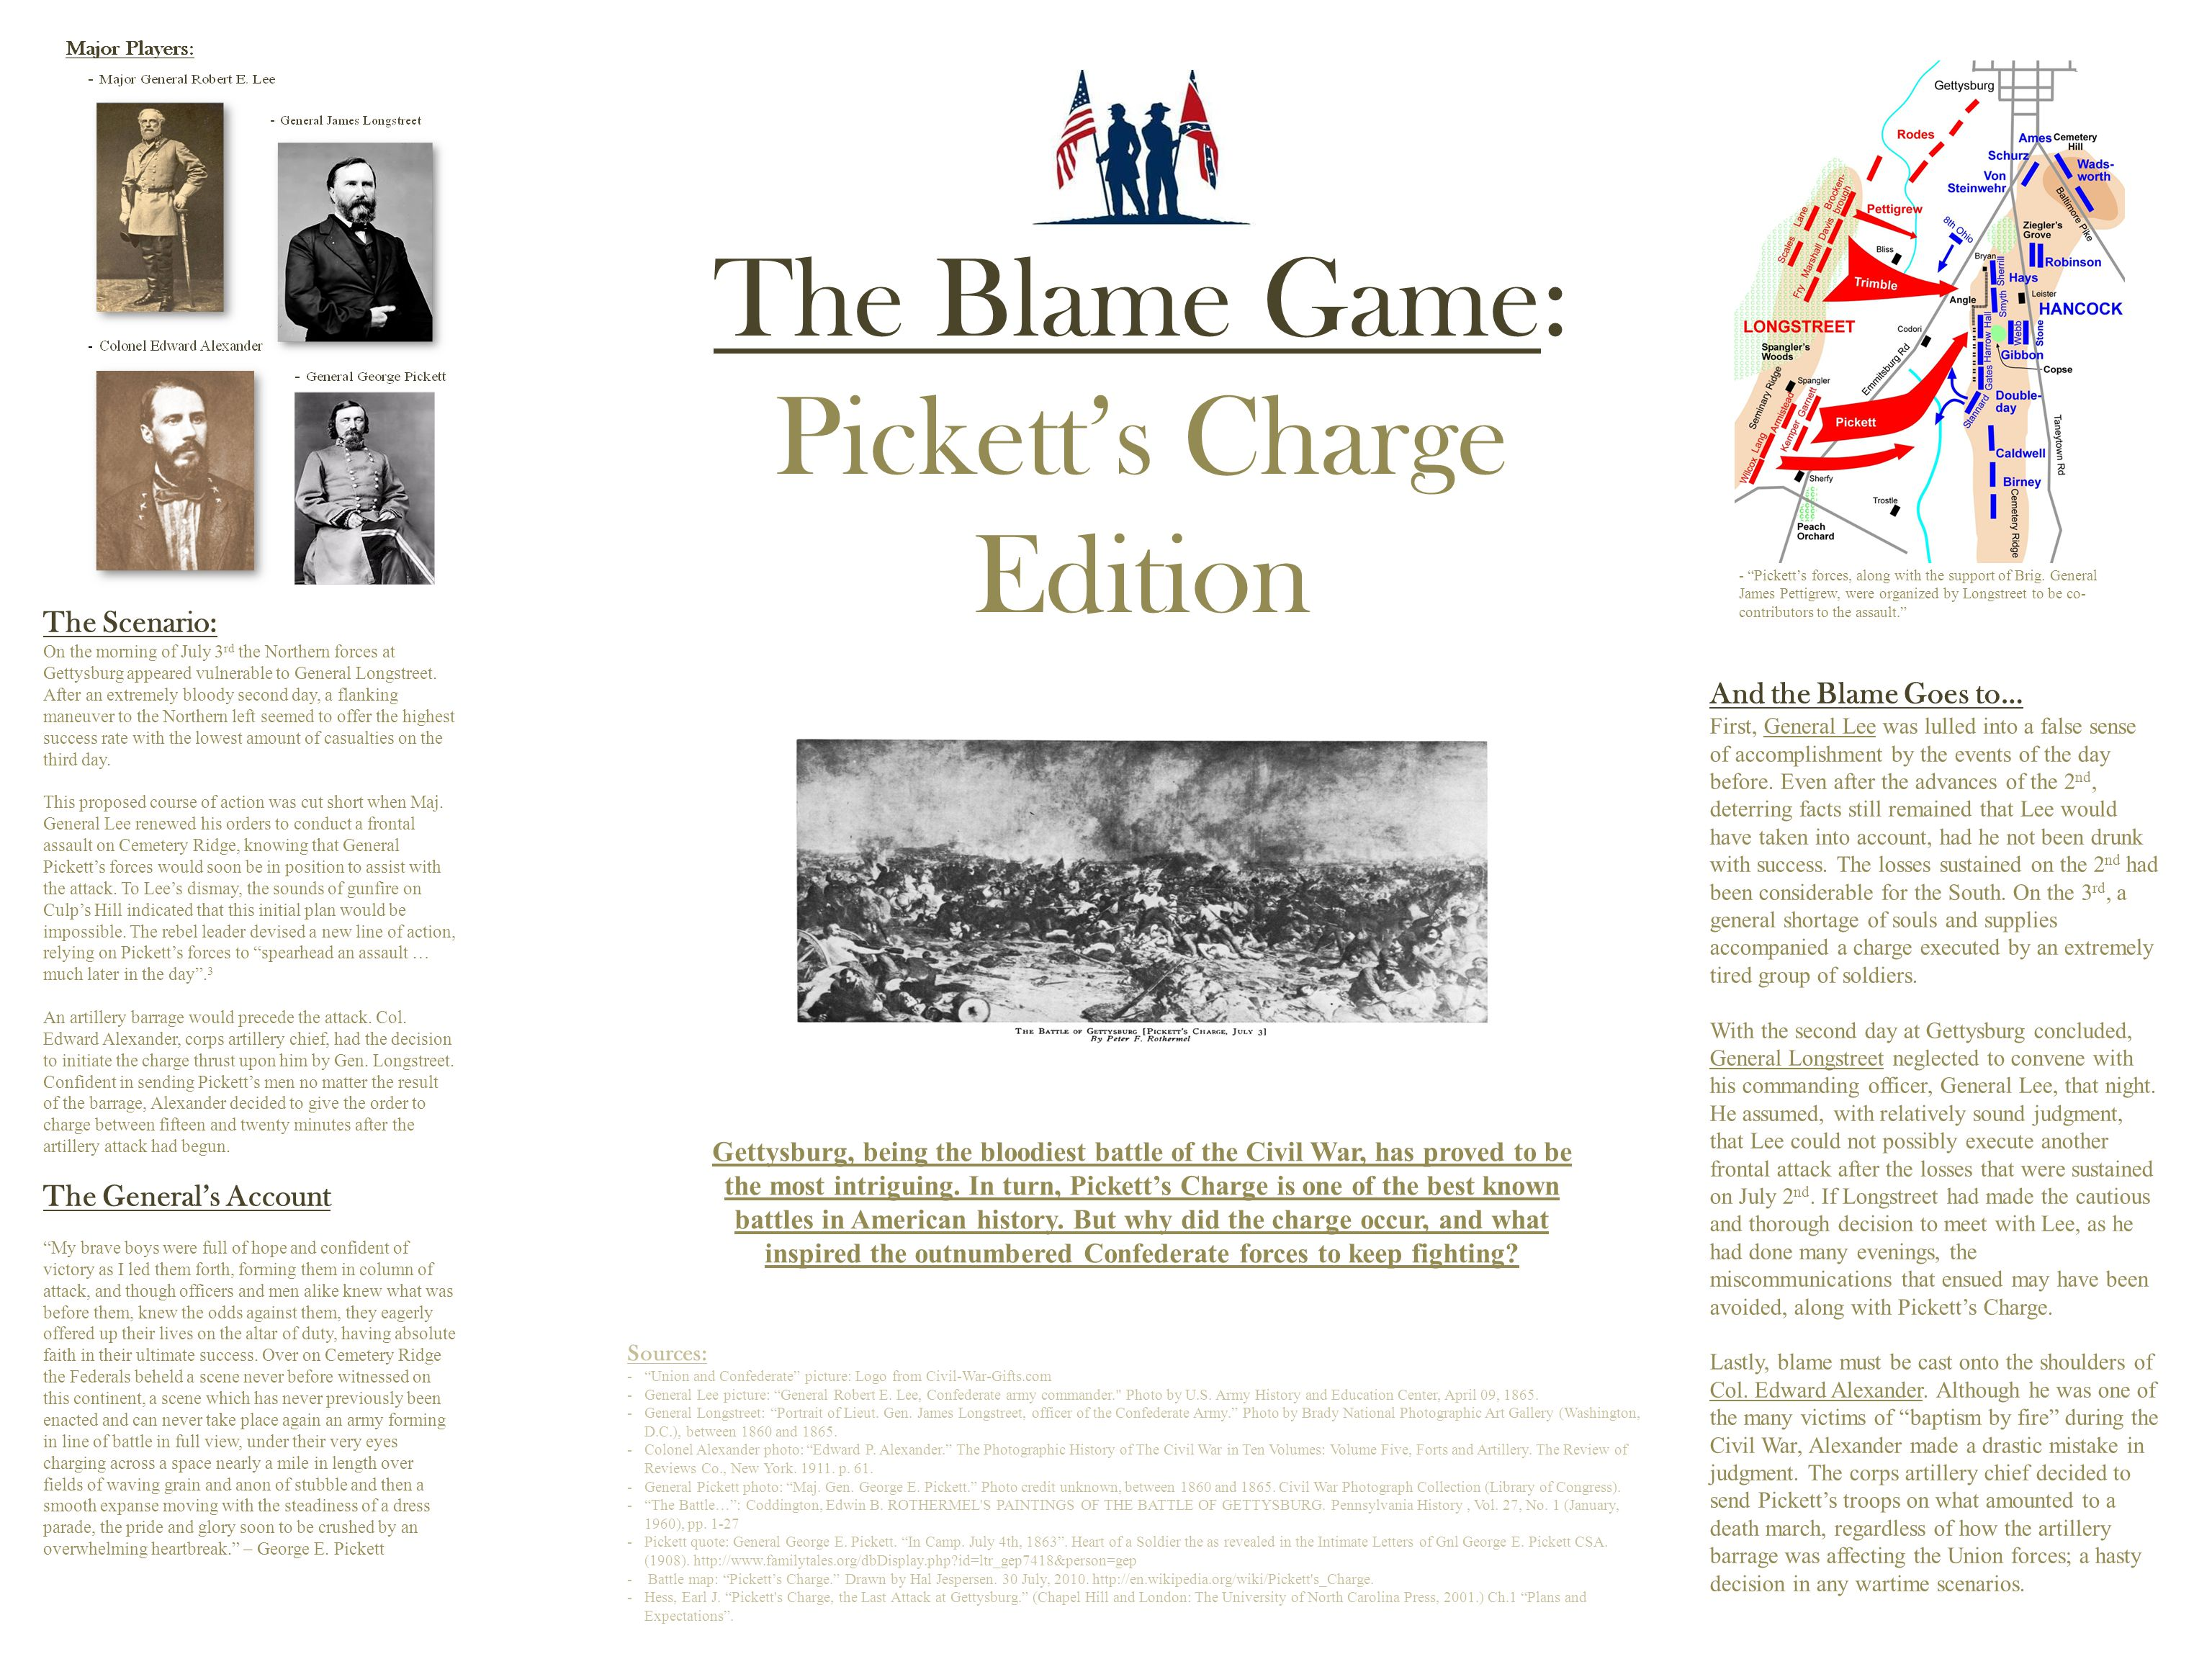 The Blame Game: Pickett's Charge Edition Gettysburg, being the bloodiest battle of the Civil War, has proved to be the most intriguing.